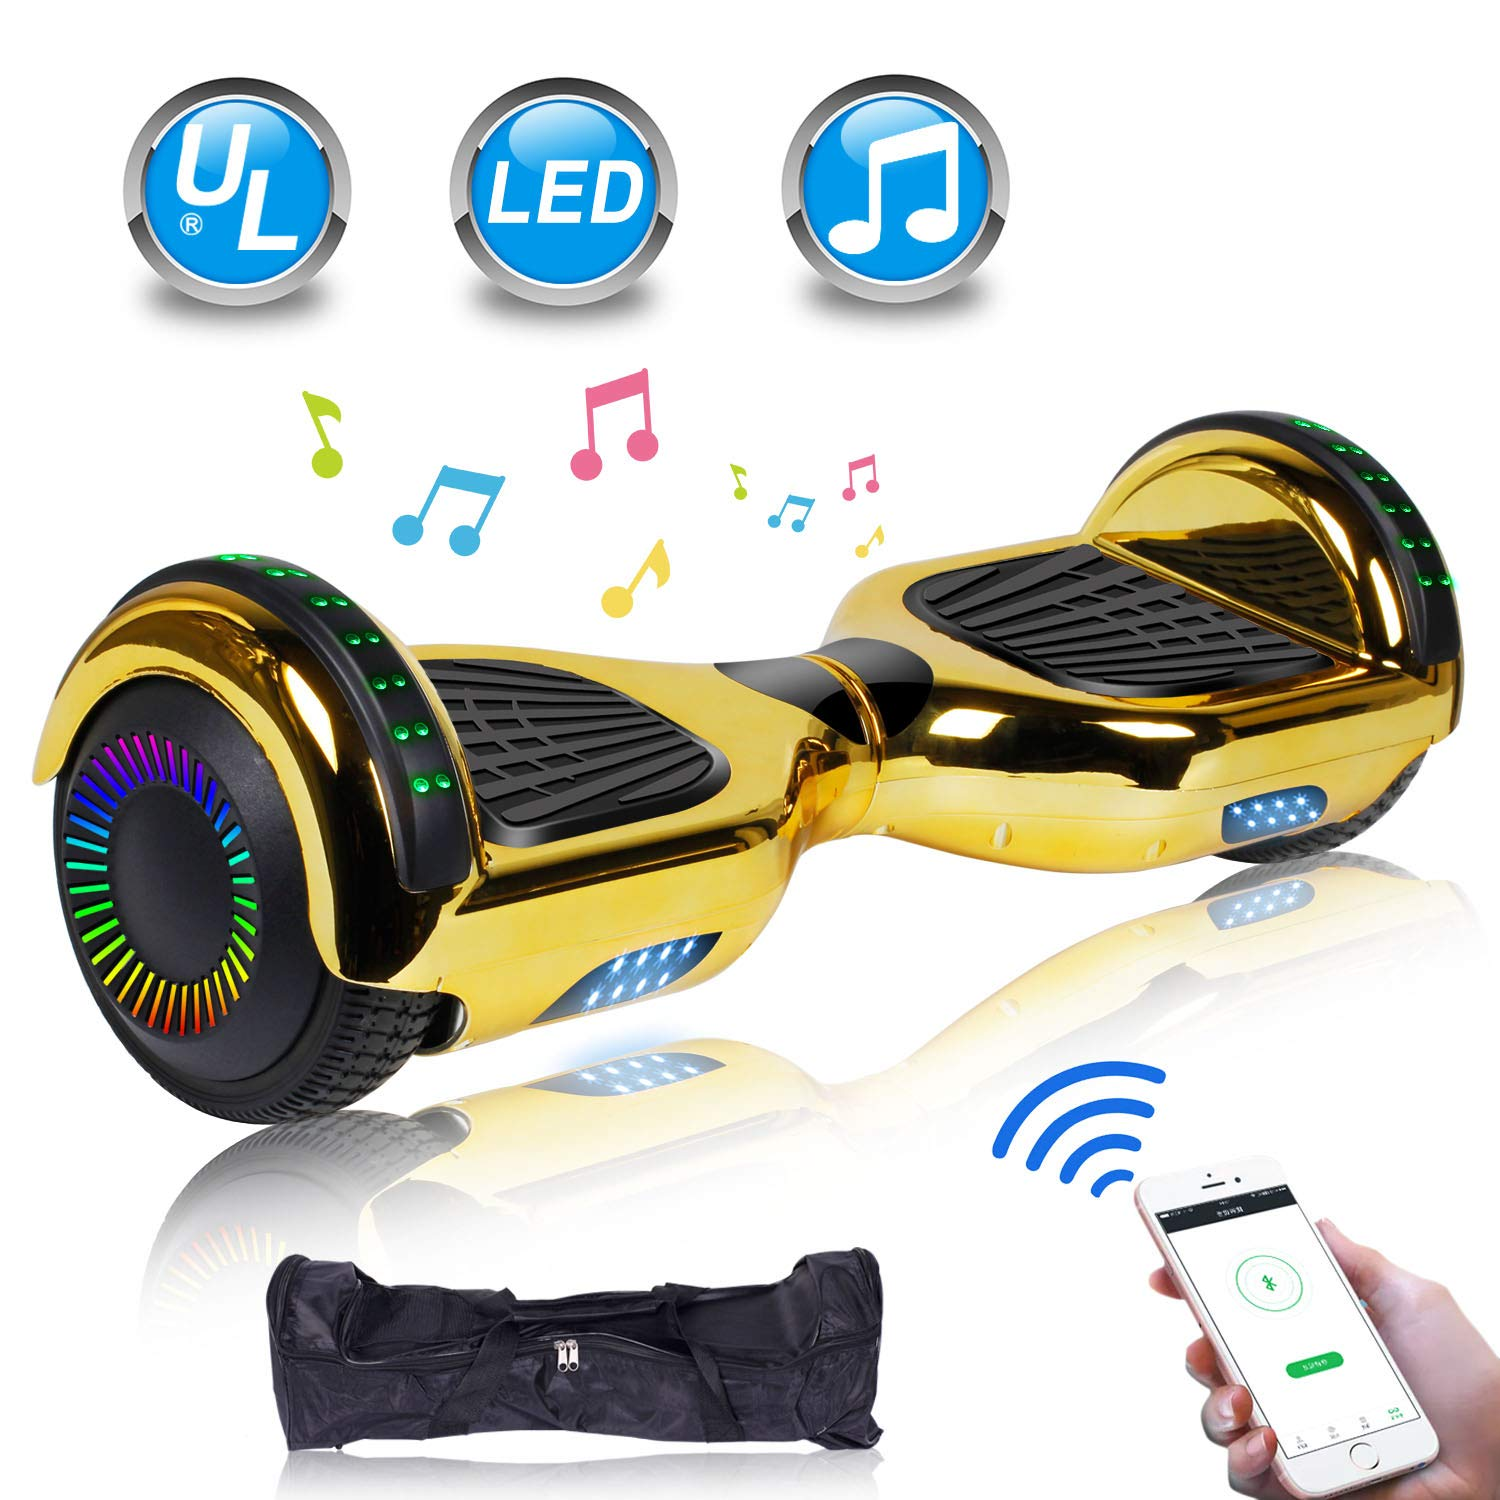 UNI-SUN 6.5'' Hoverboard for Kids, Two Wheel Electric Scooter, Self Balancing Hoverboard with Bluetooth and LED Lights for Adults, UL 2272 Certified Hover Board(Ultimate Chrome Gold